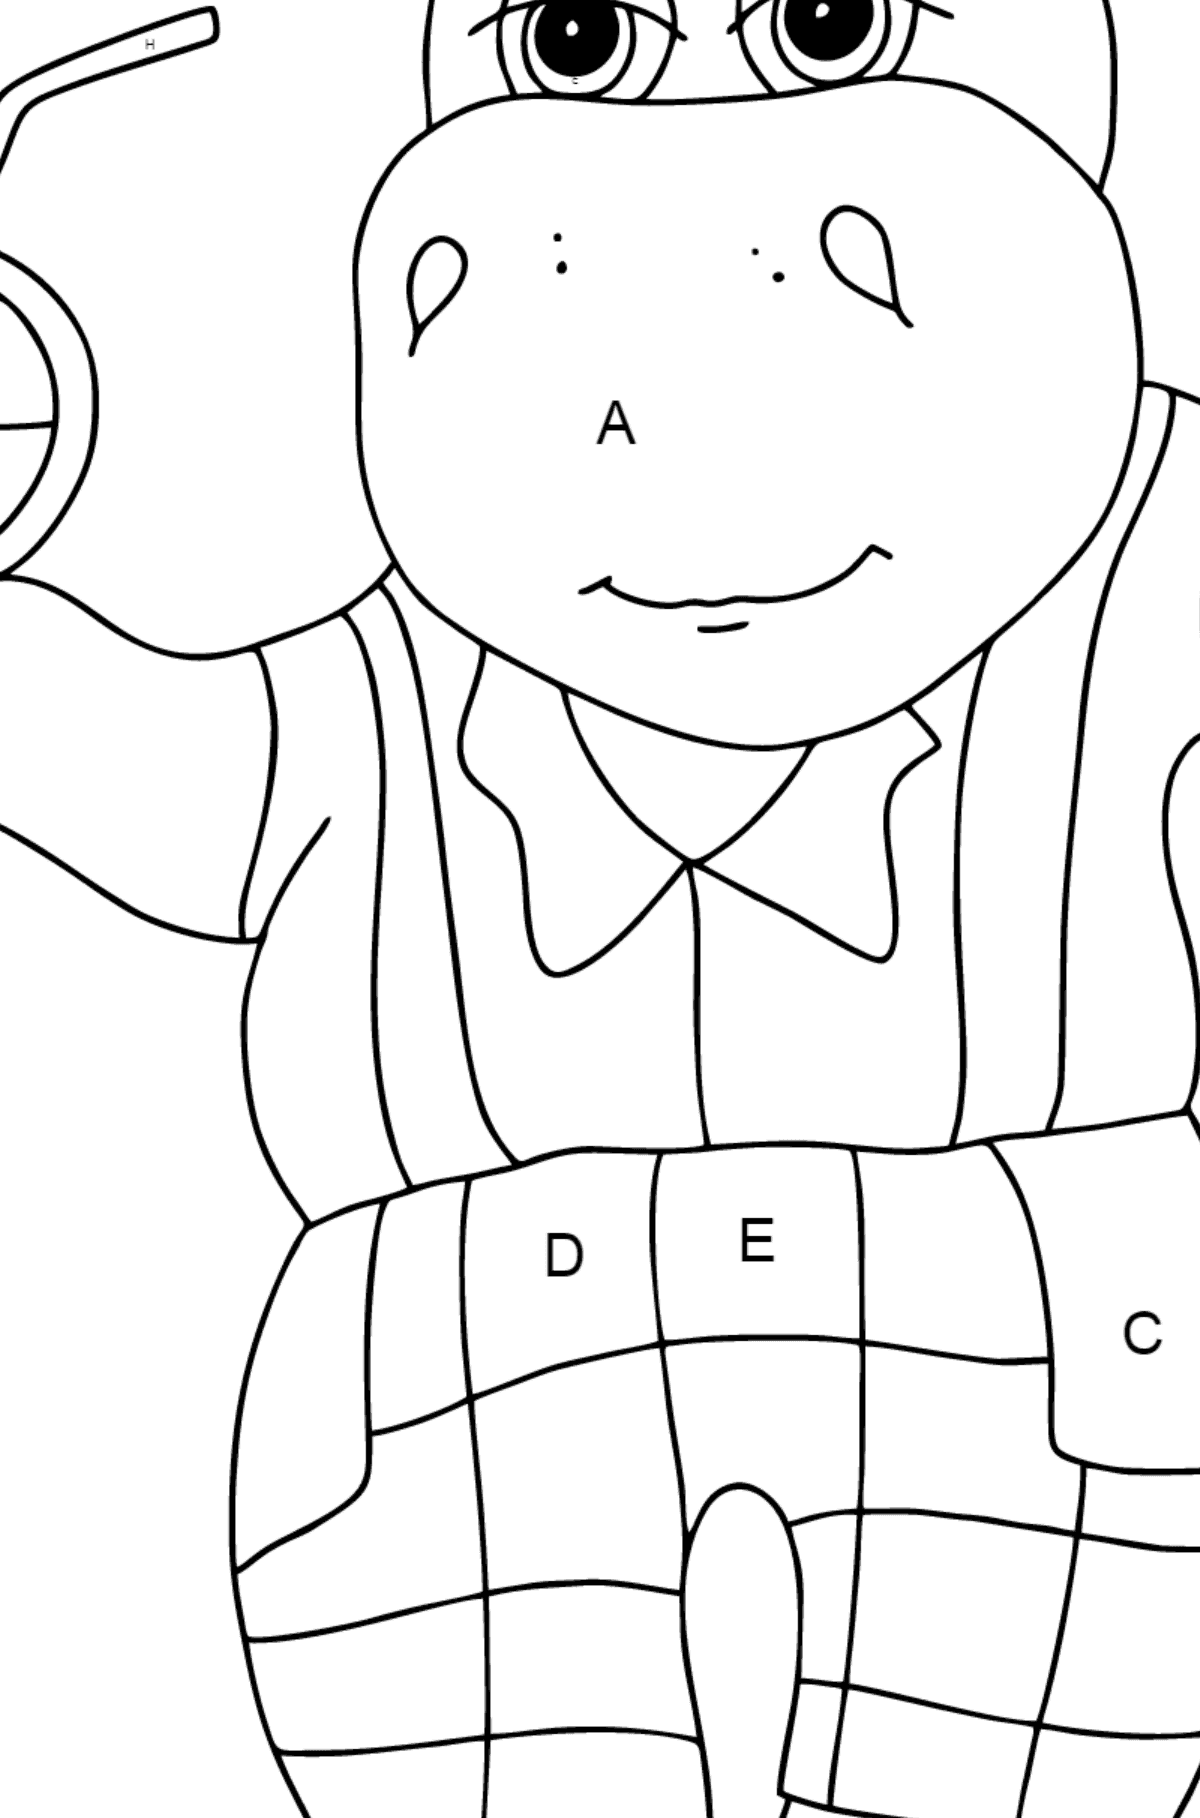 Coloring Page - A Hippo on a Beach with Juice for Kids  - Color by Letters